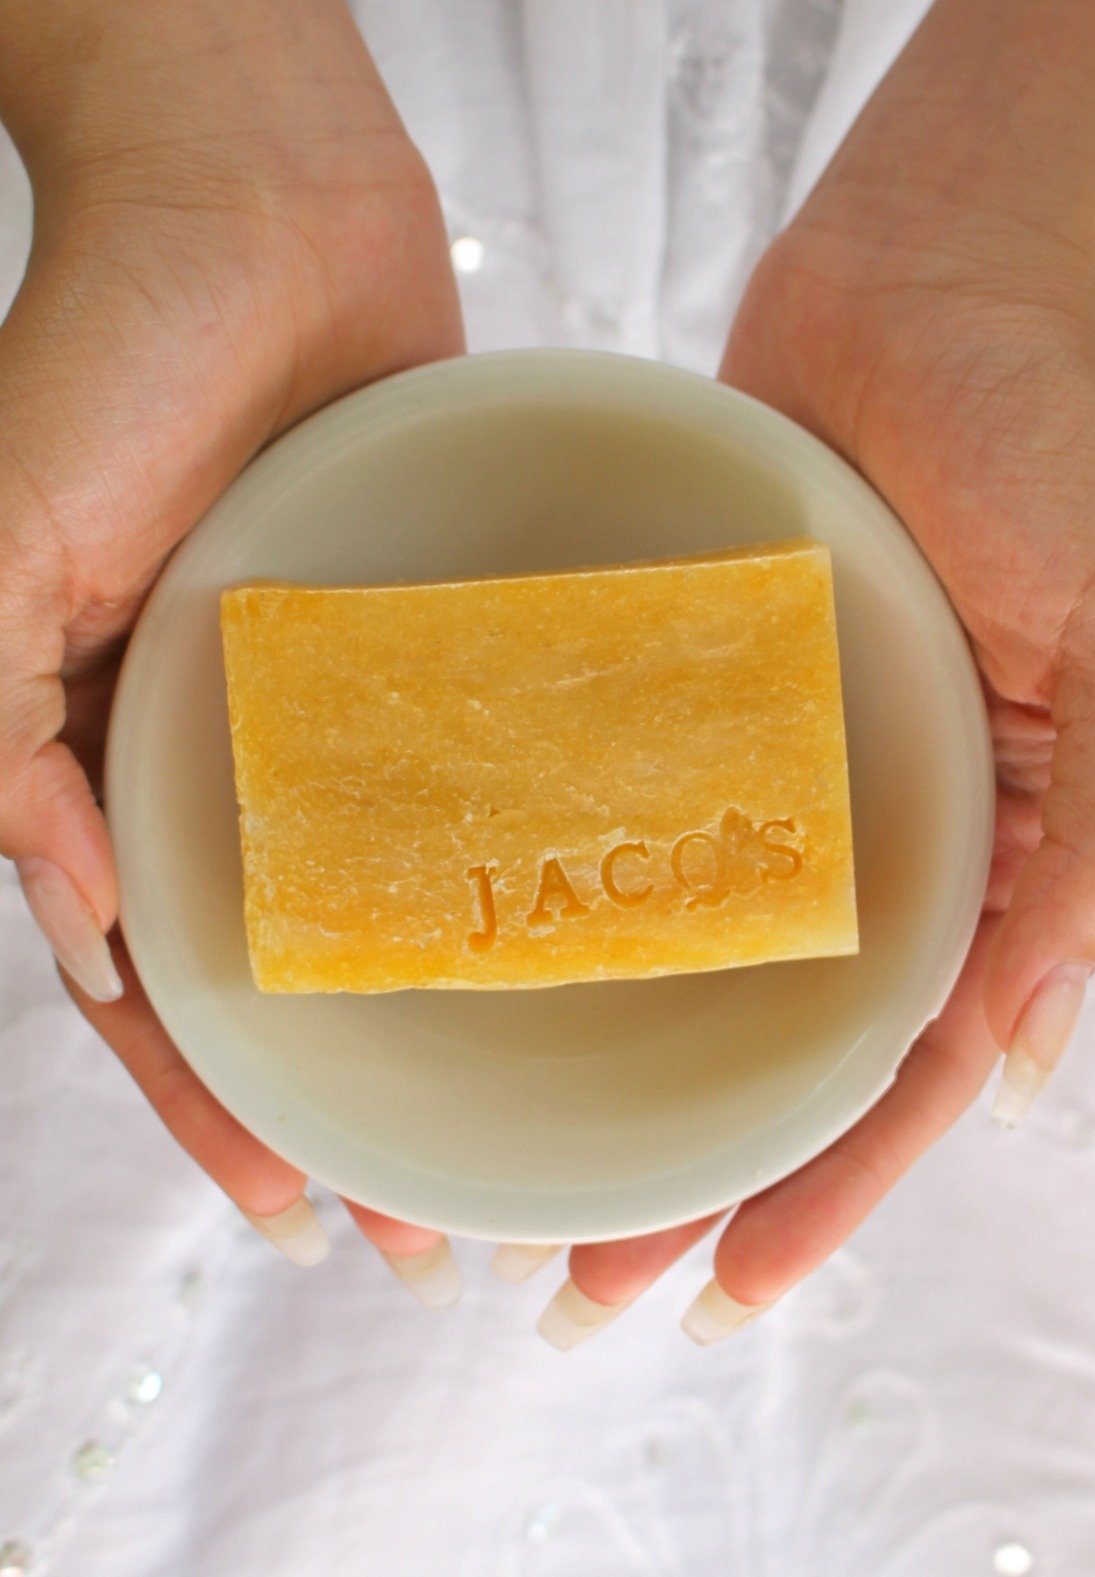 Jacq's Wild Hibiscus & Carrot Cleansing Bar